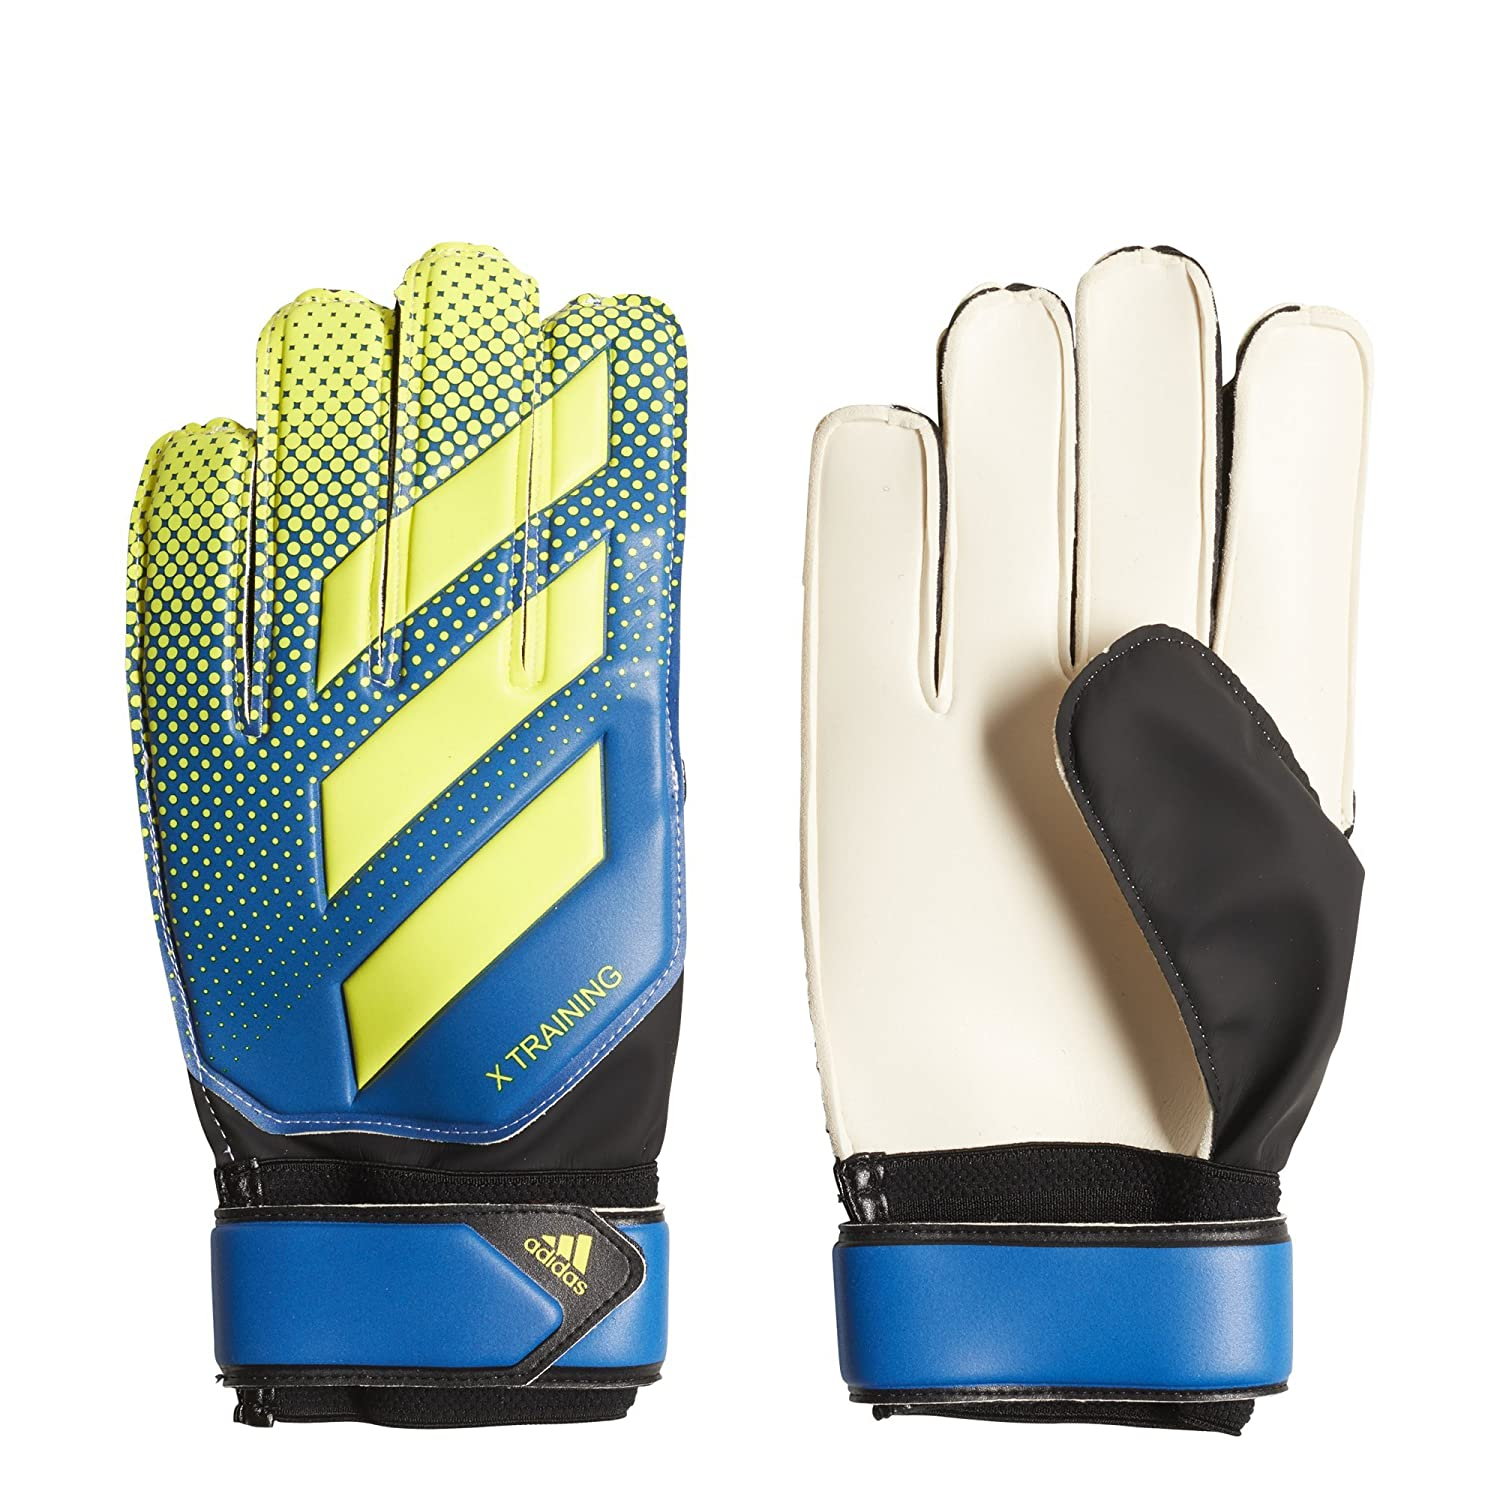 Adidas X Training Torwart Handschuh